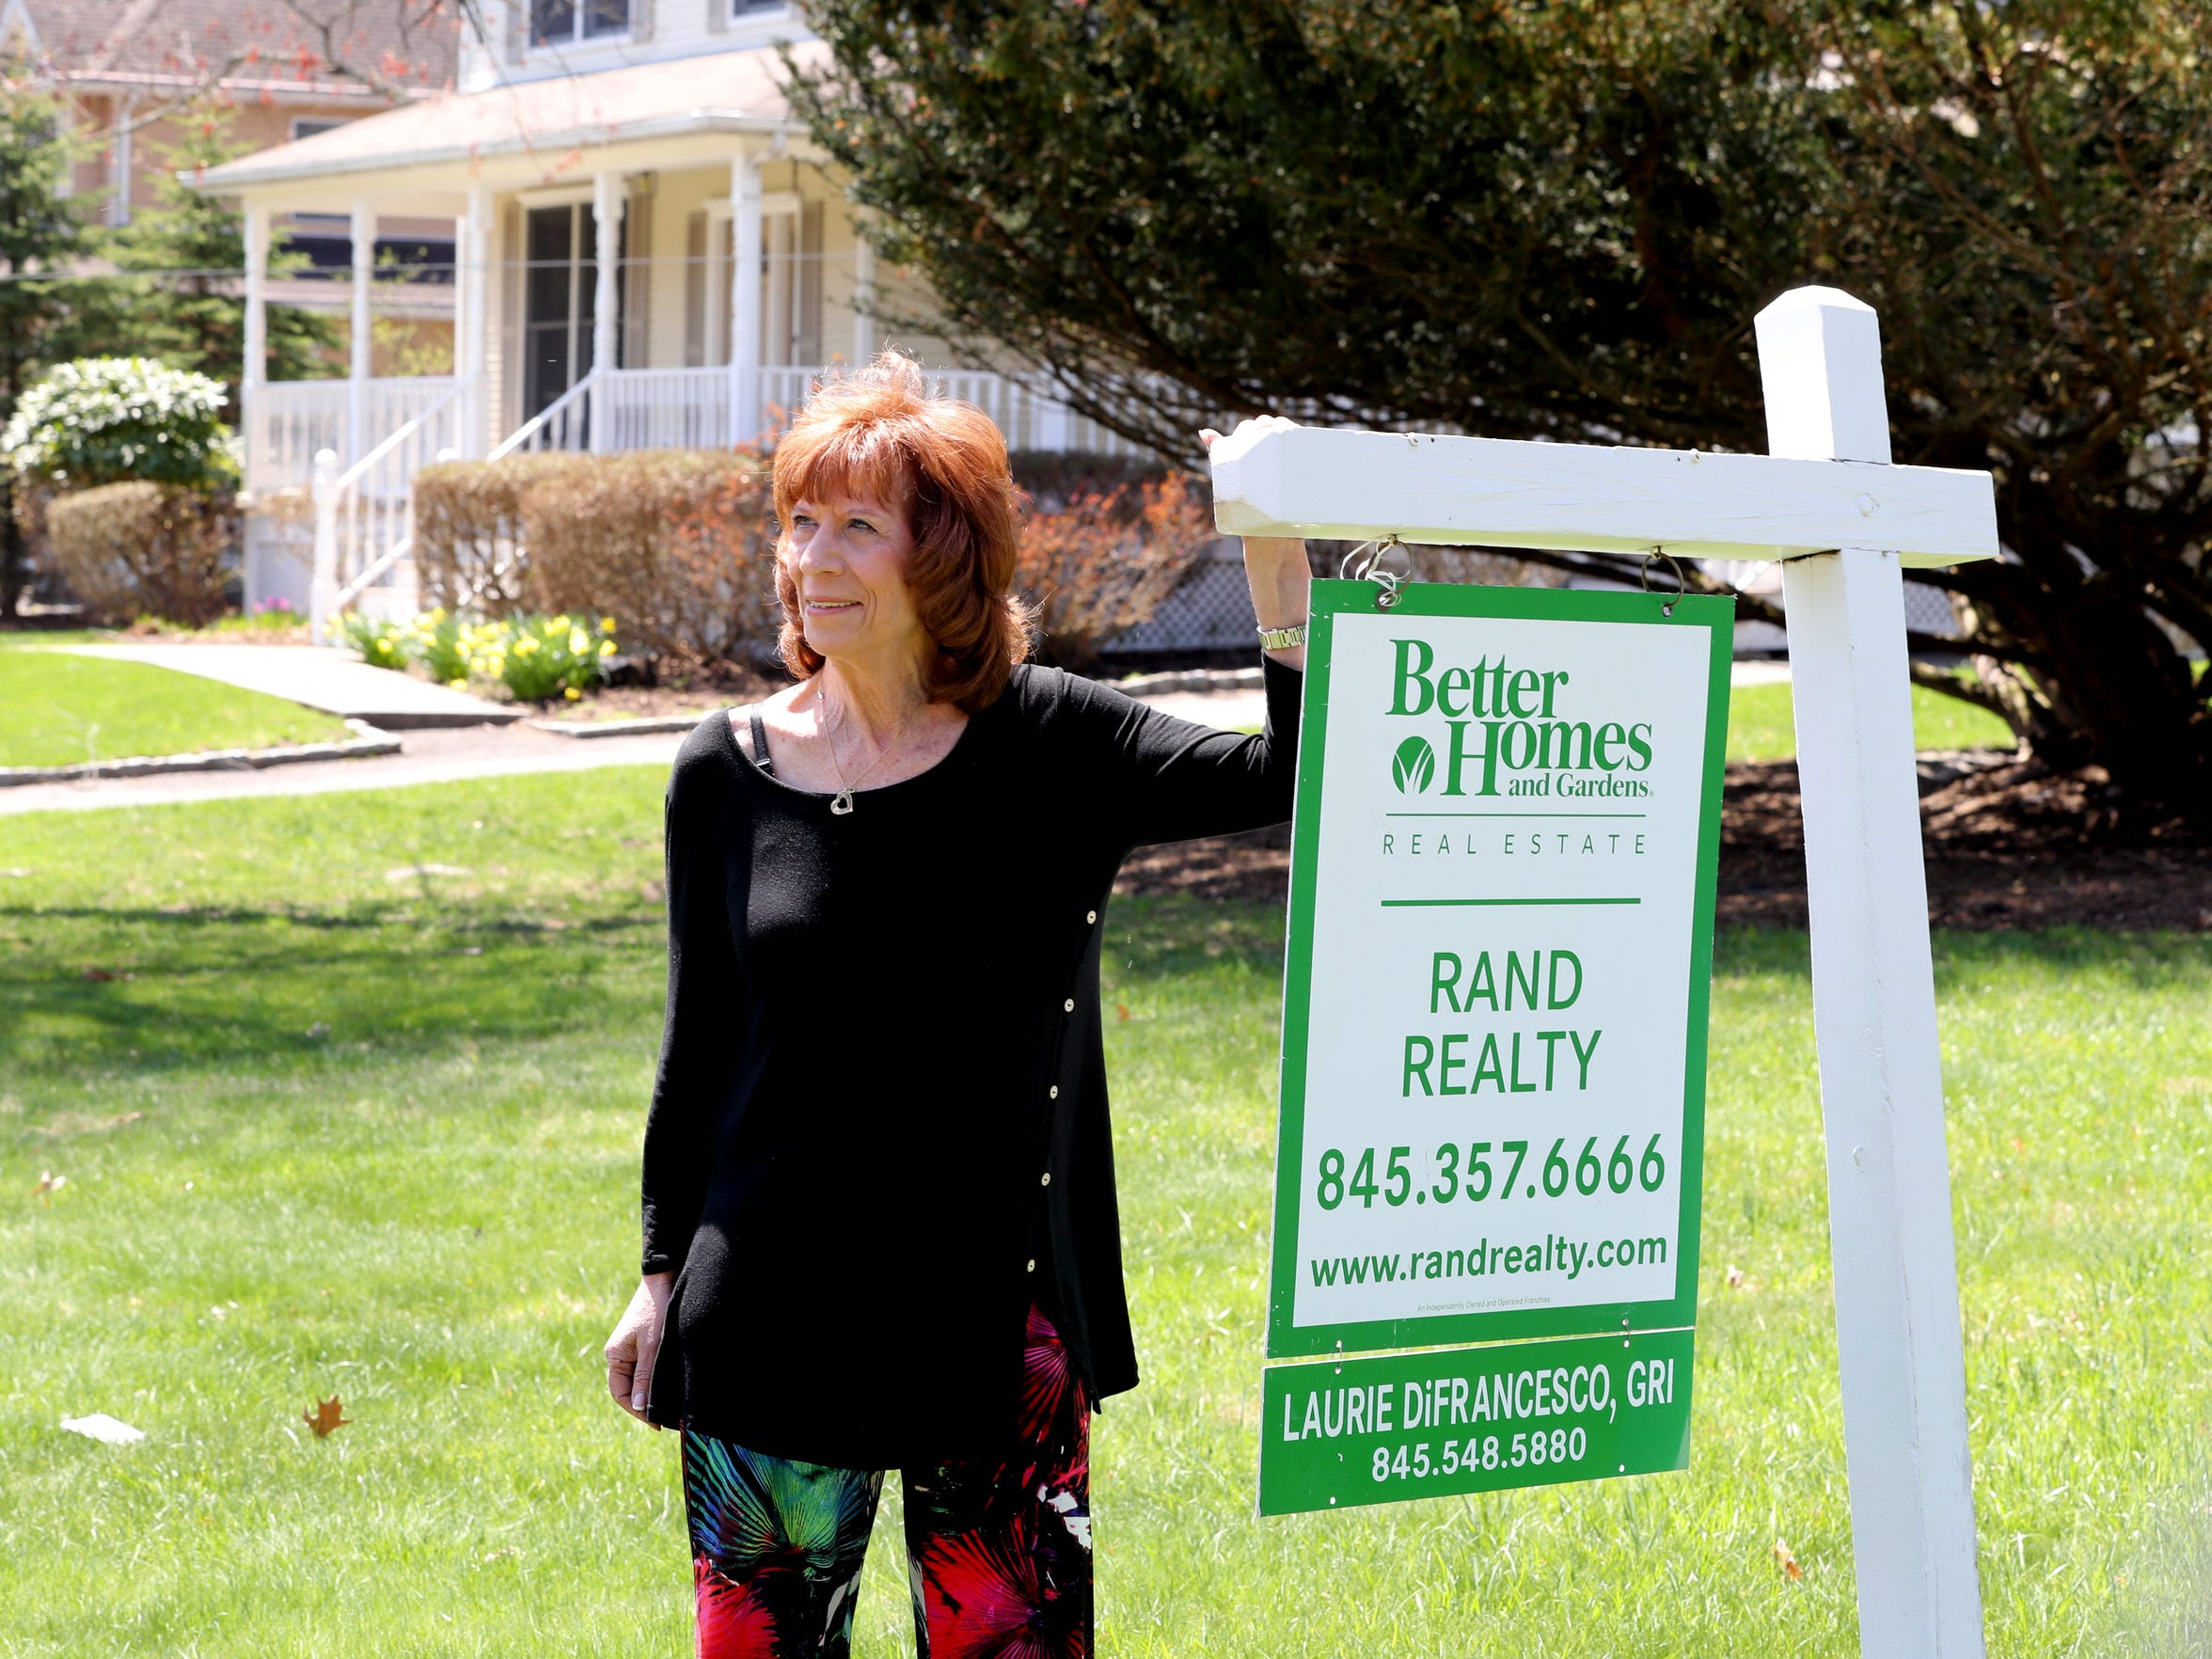 Laurie DiFrancesco is a member of the Airmont Comprehensive Plan Update Committee, a Zoning Board of Appeals member and a realtor. She was photographed May 1, 2018 at a house in Airmont that she her company is selling.